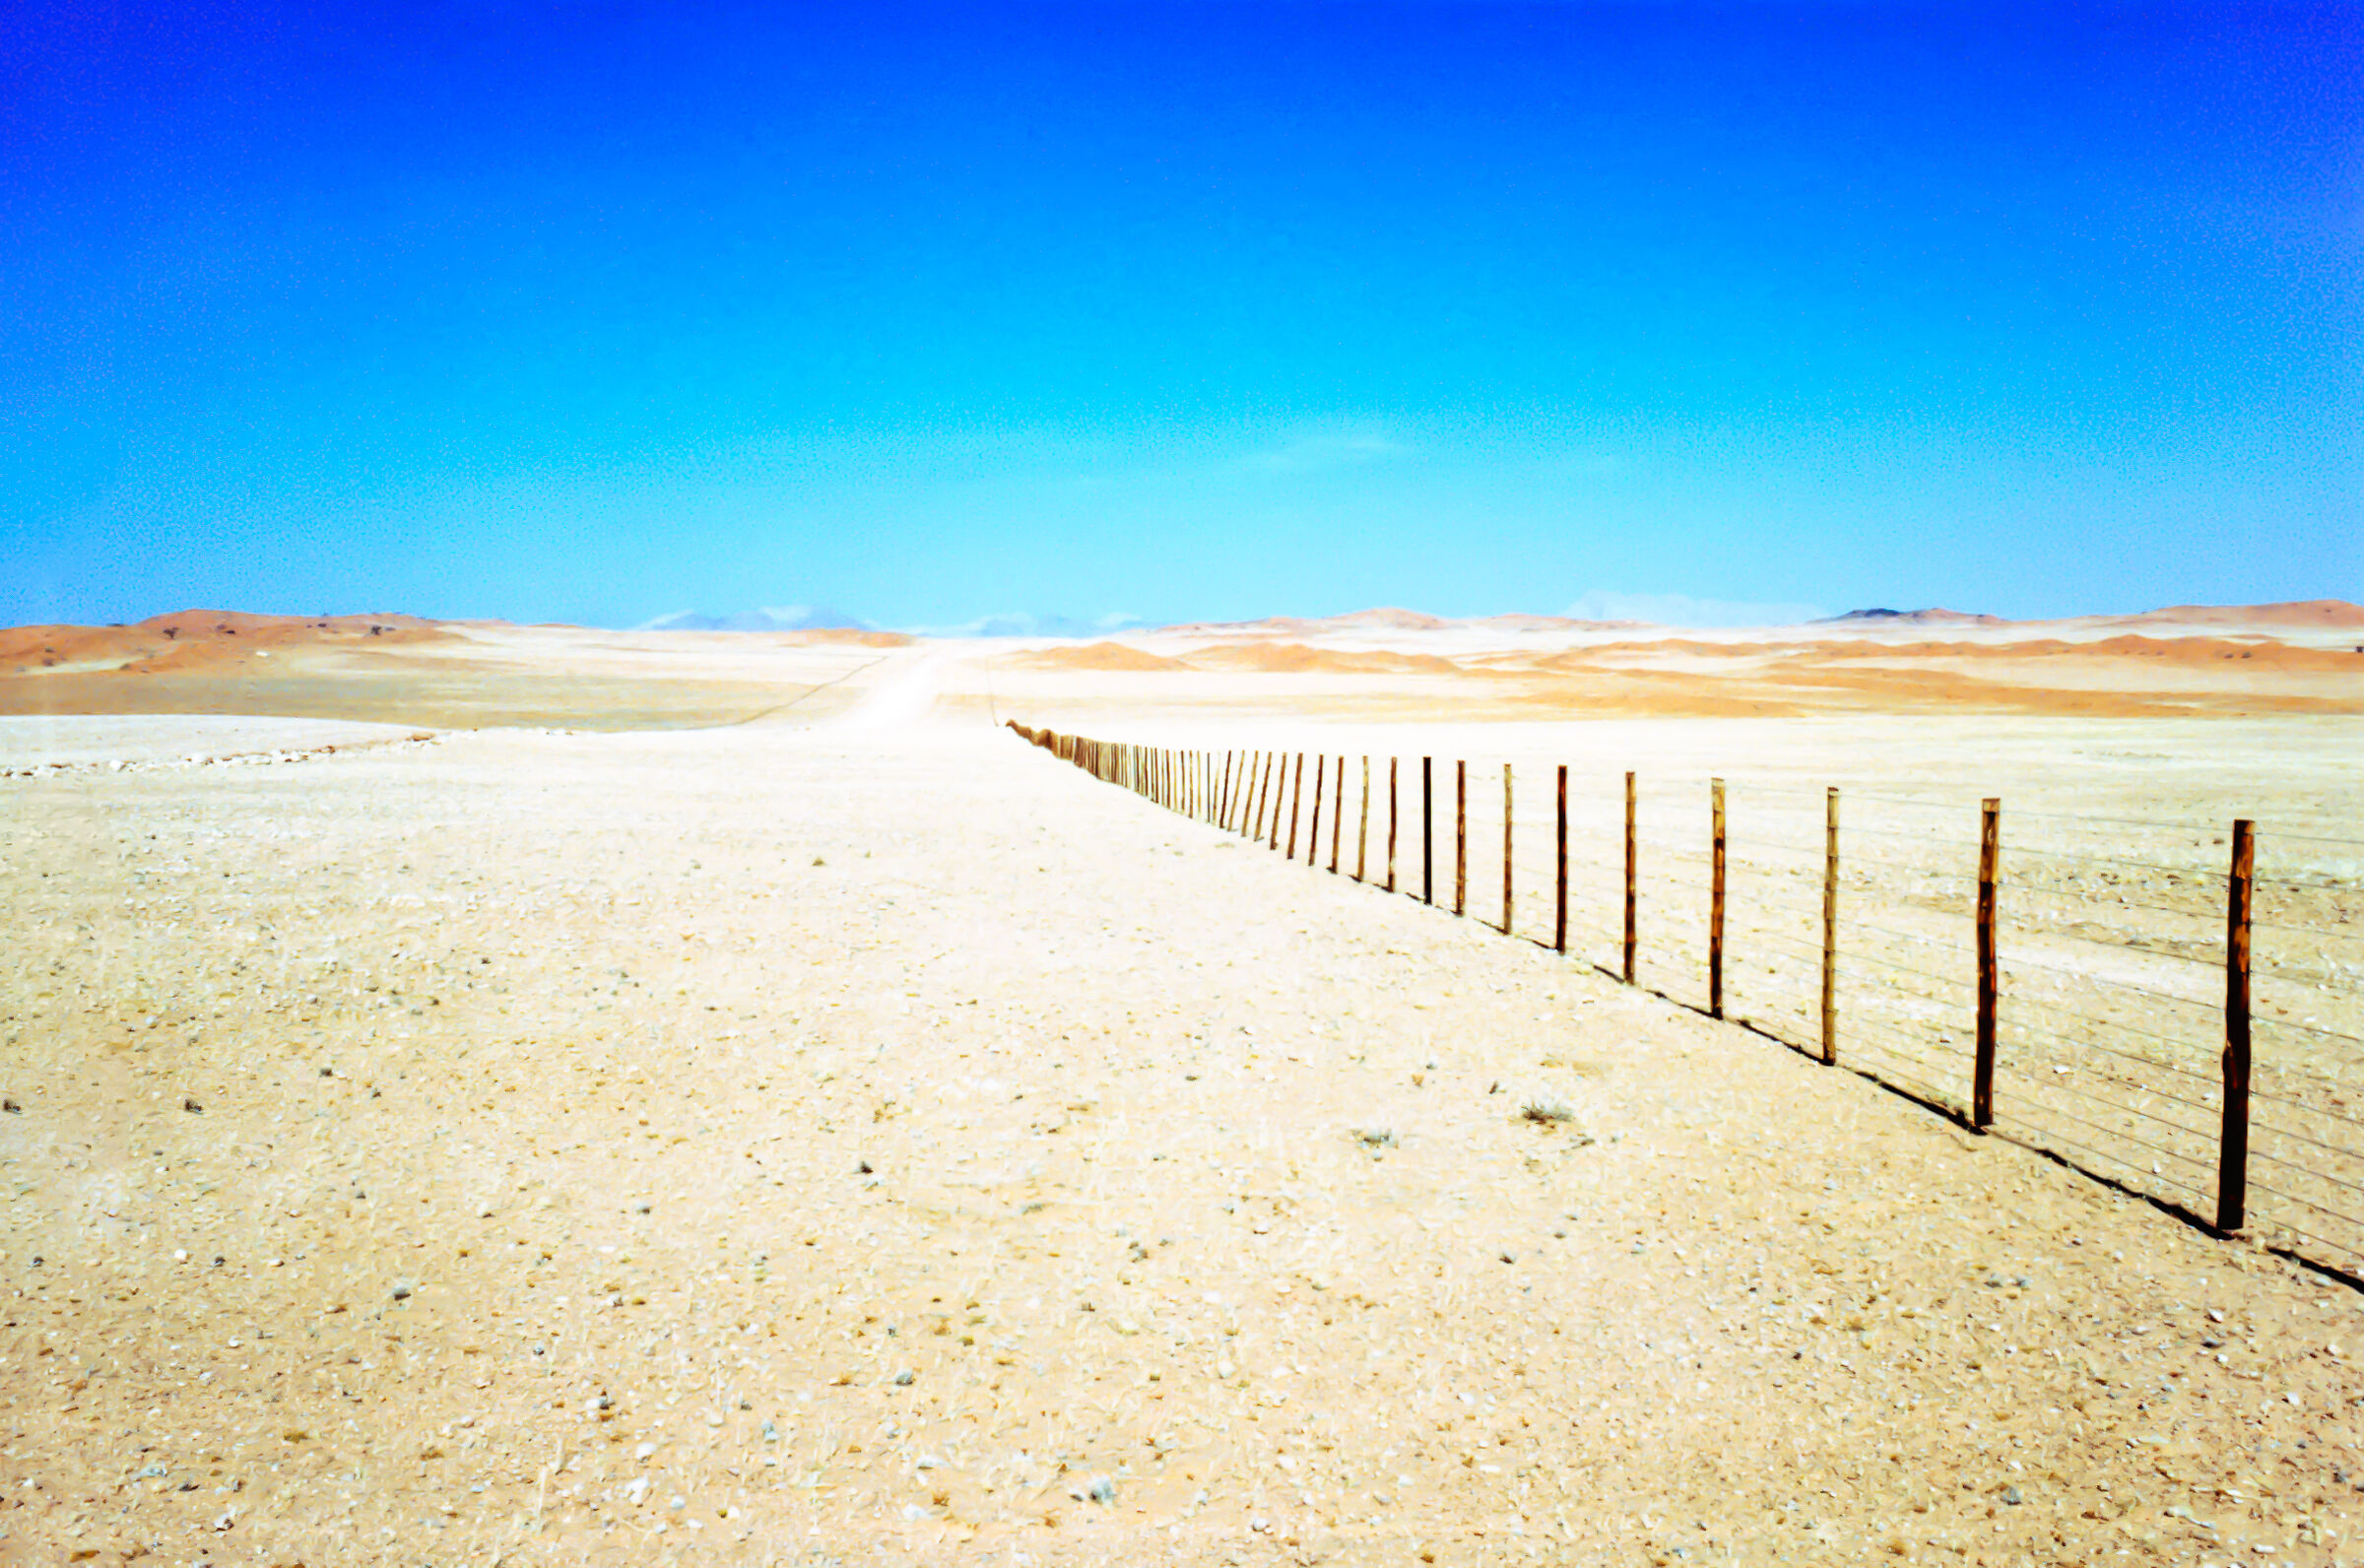 The road in the desert...